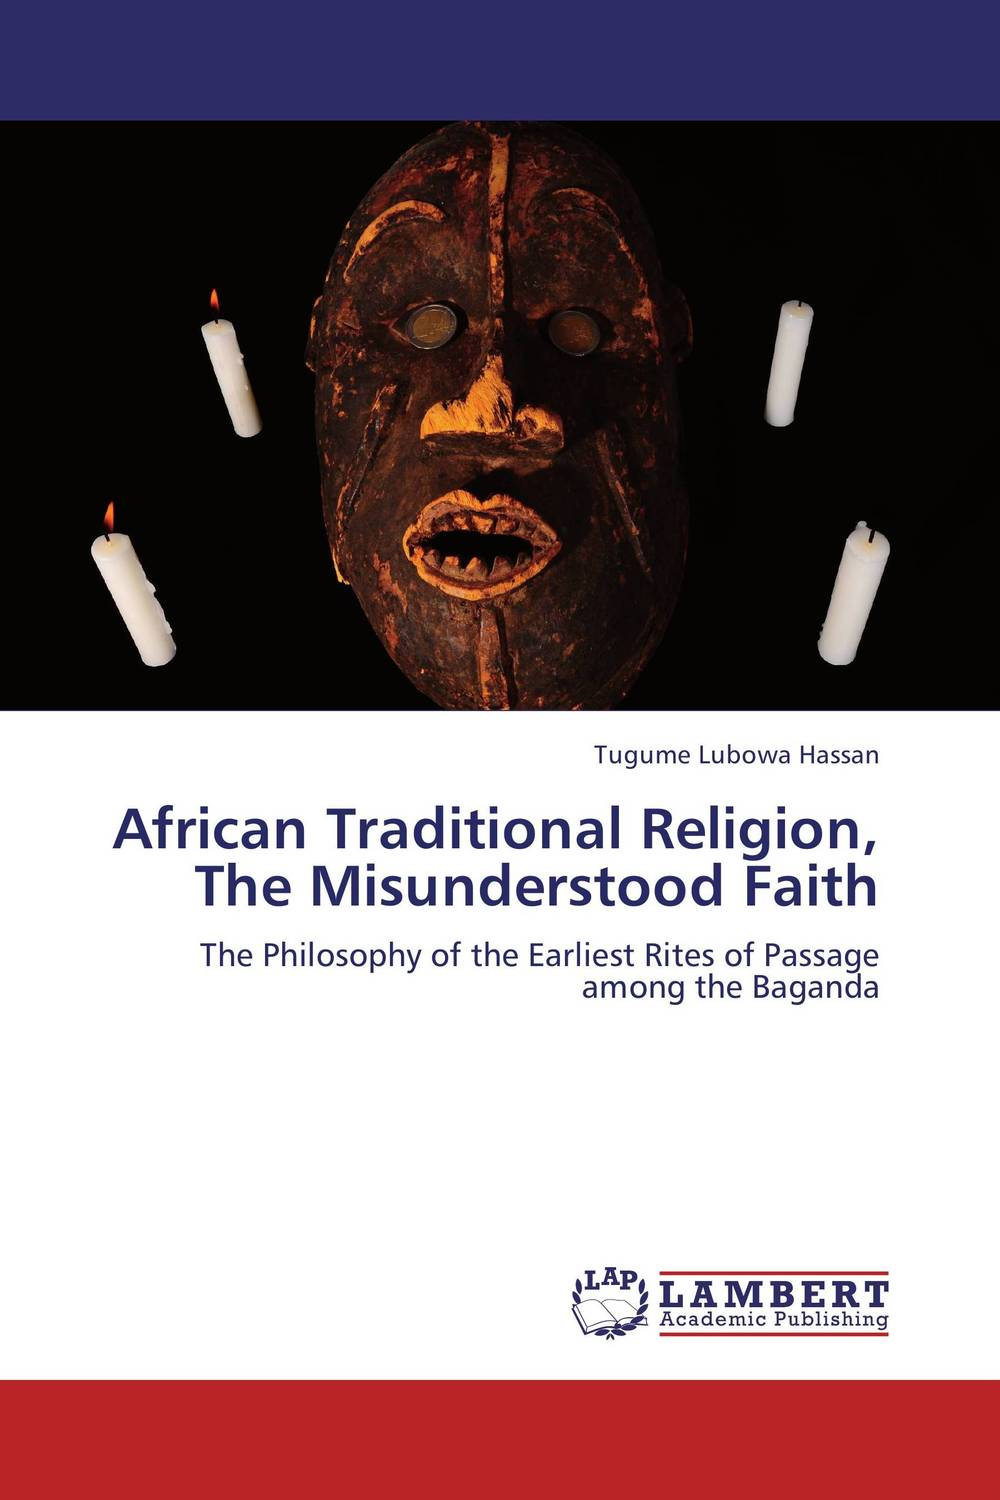 African Traditional Religion, The Misunderstood Faith phillip d mazambara the vitality of african indigenous religion